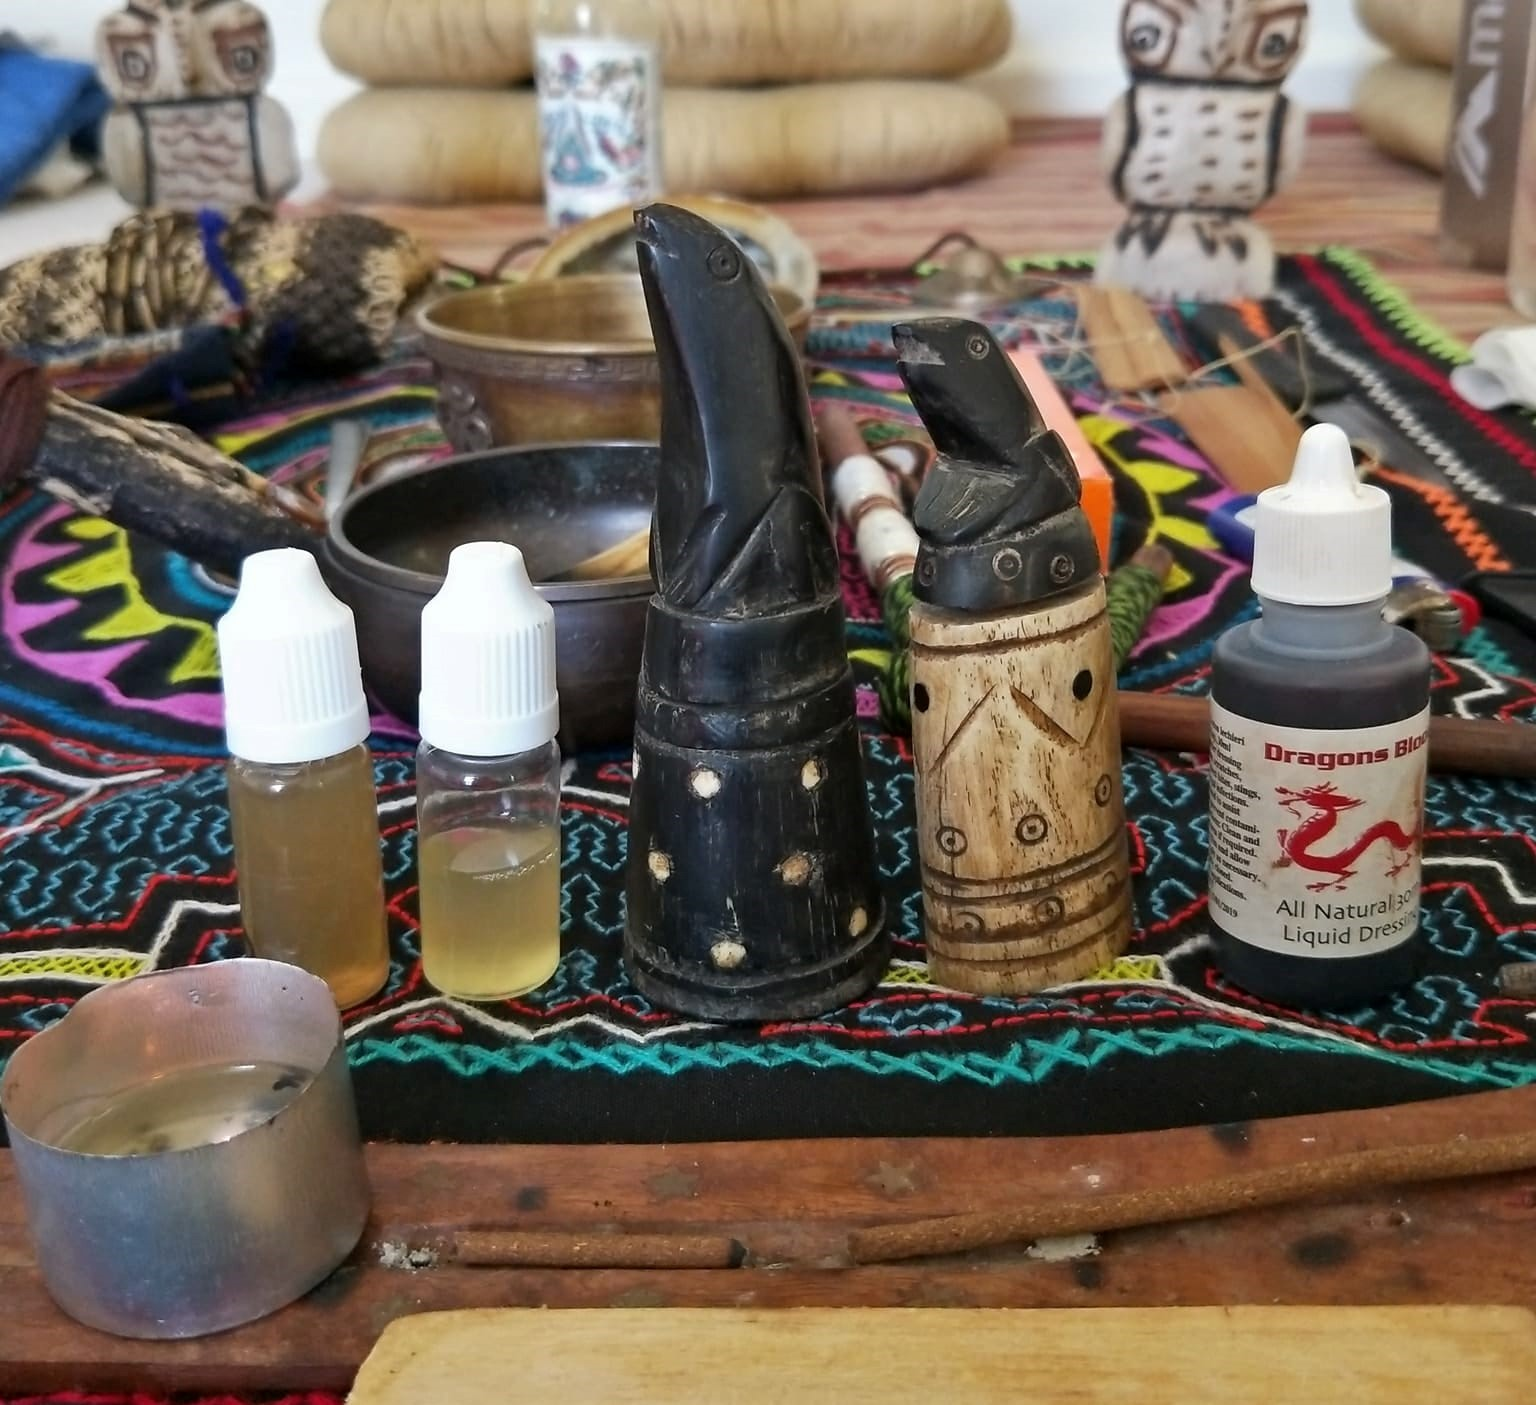 Sananga eye drops pictured in the two bottles to the left. The darker liquid diluted with colloidal silver - to act as preservative, and to decrease the strength of the already strong medicine.